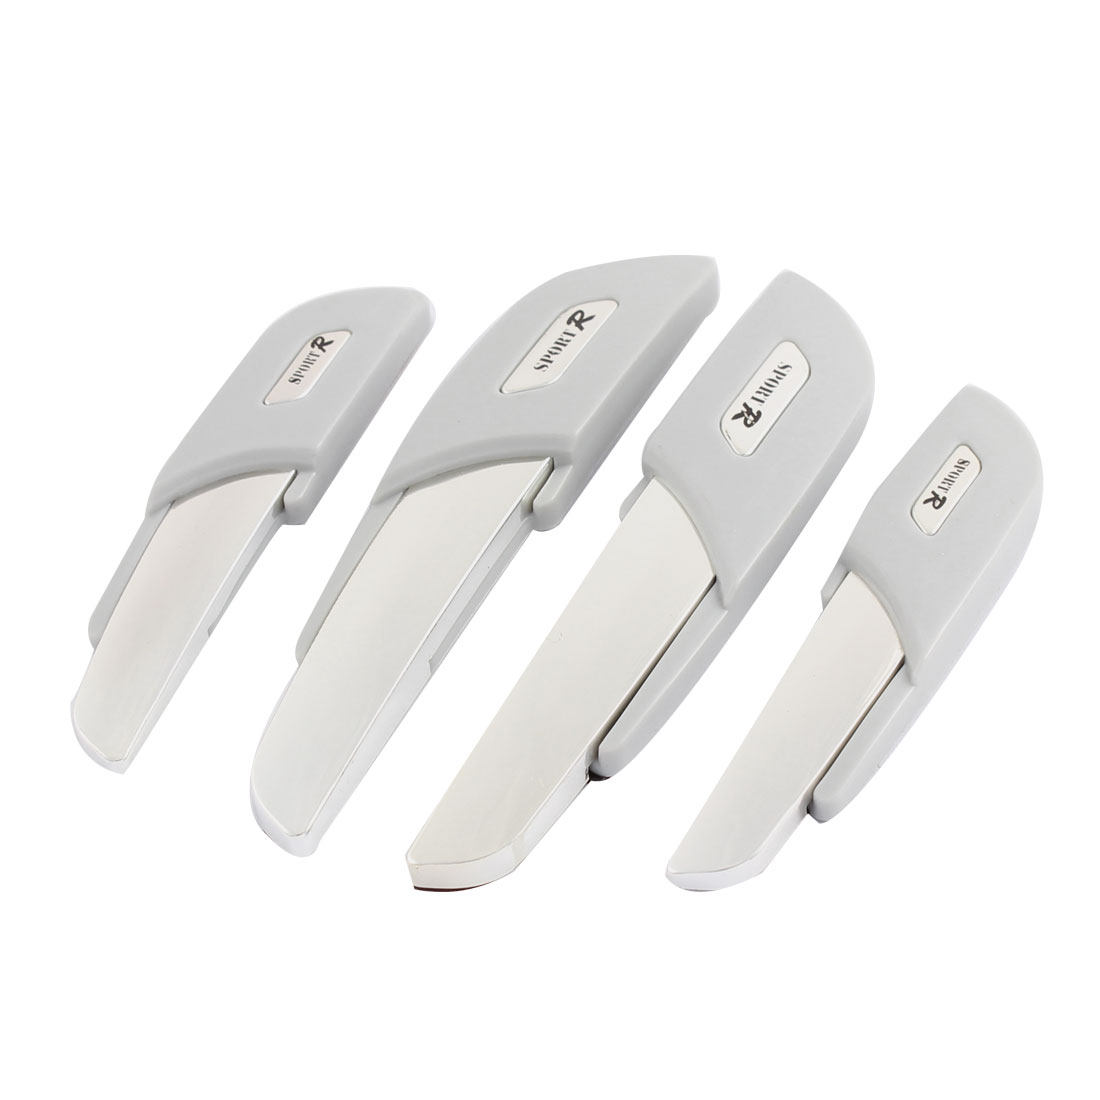 4 Pcs White Silver Tone Decorative Car Door Bumper Guard Sticker